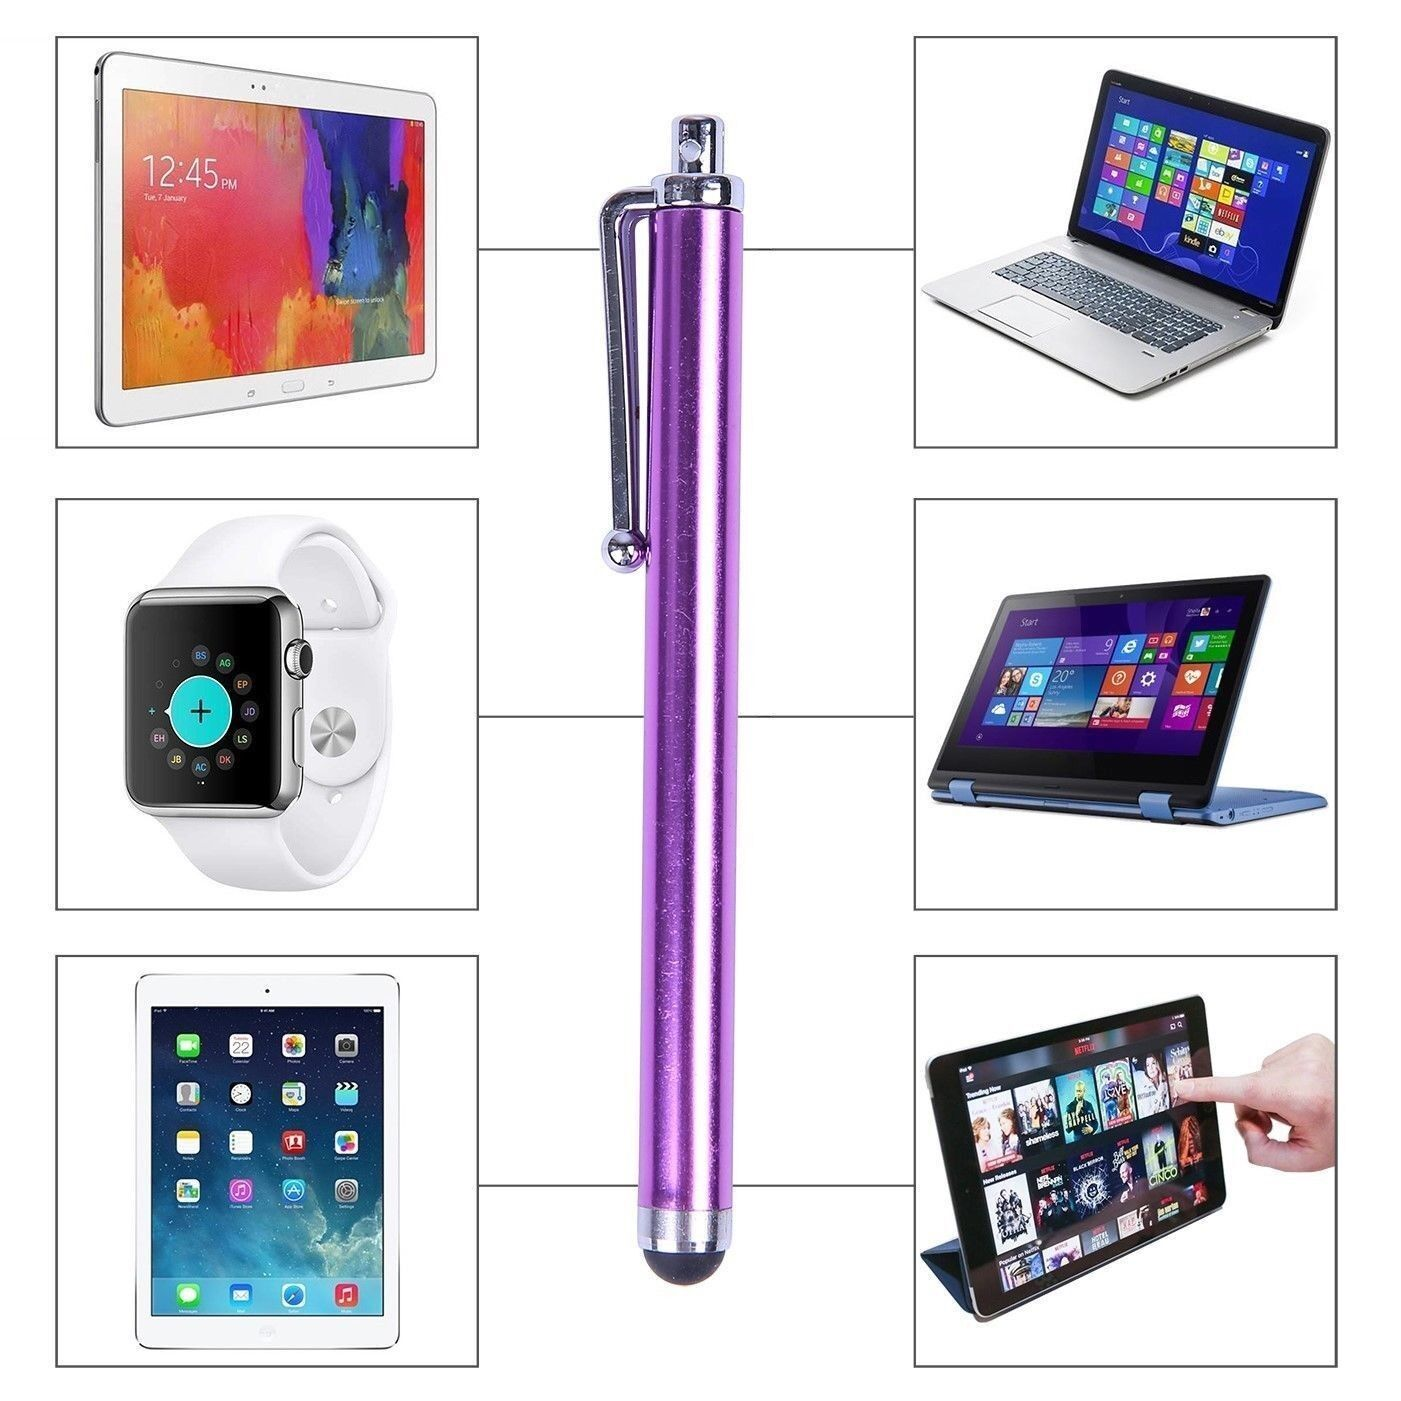 2X Metal Universal Stylus Pen Touch Screen For Tablet Mobile Phone iPad iPod PC 2